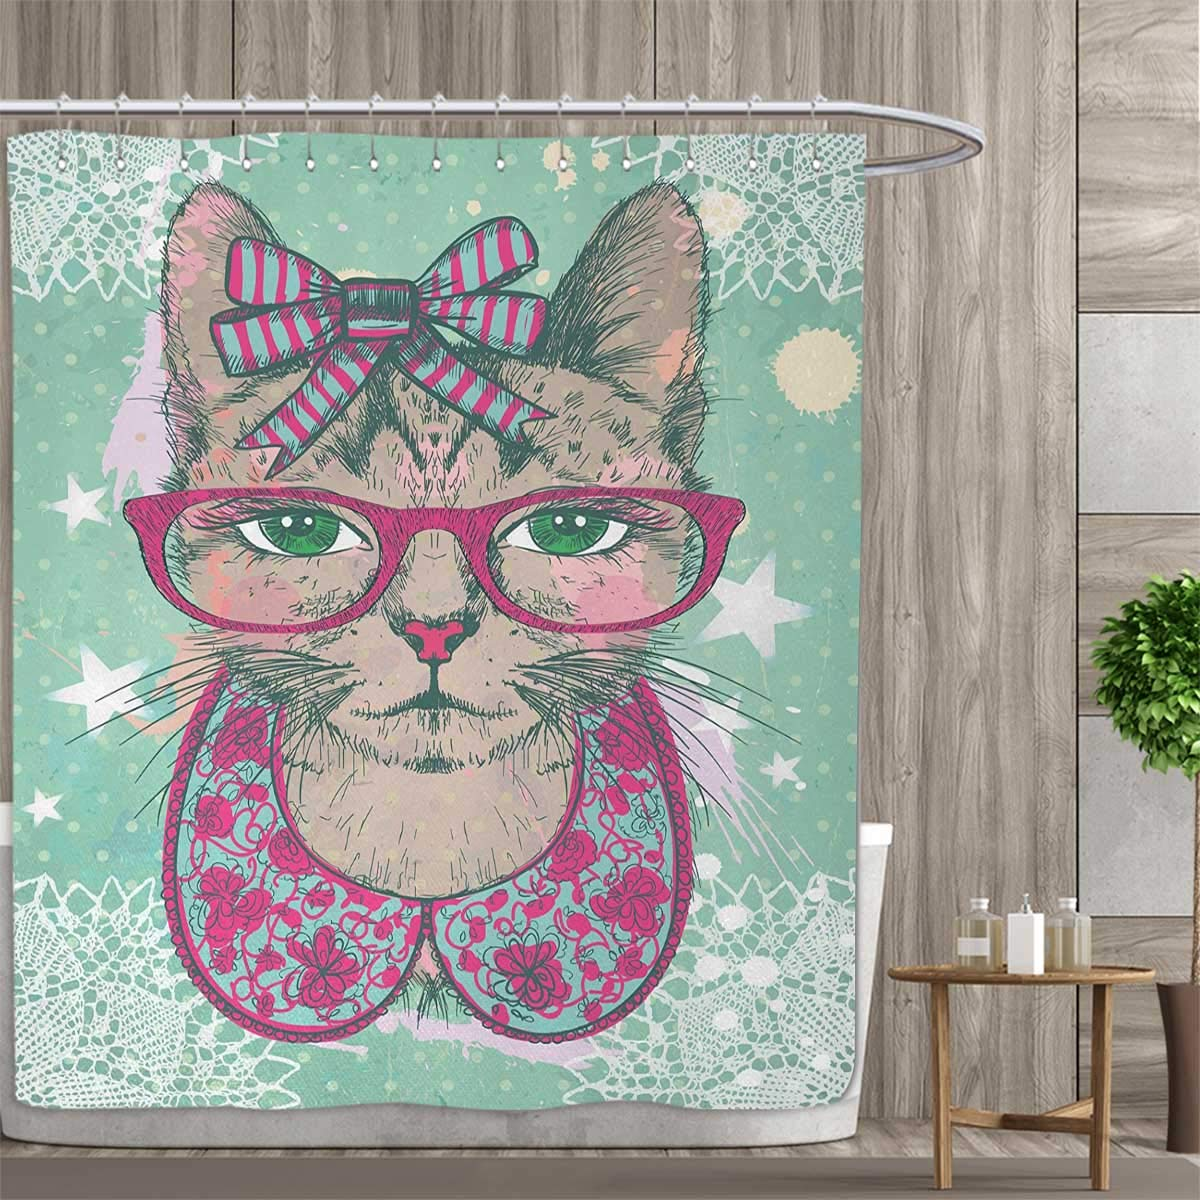 Hipster Shower Curtain Cat with Retro Glasses Print for Bathroom